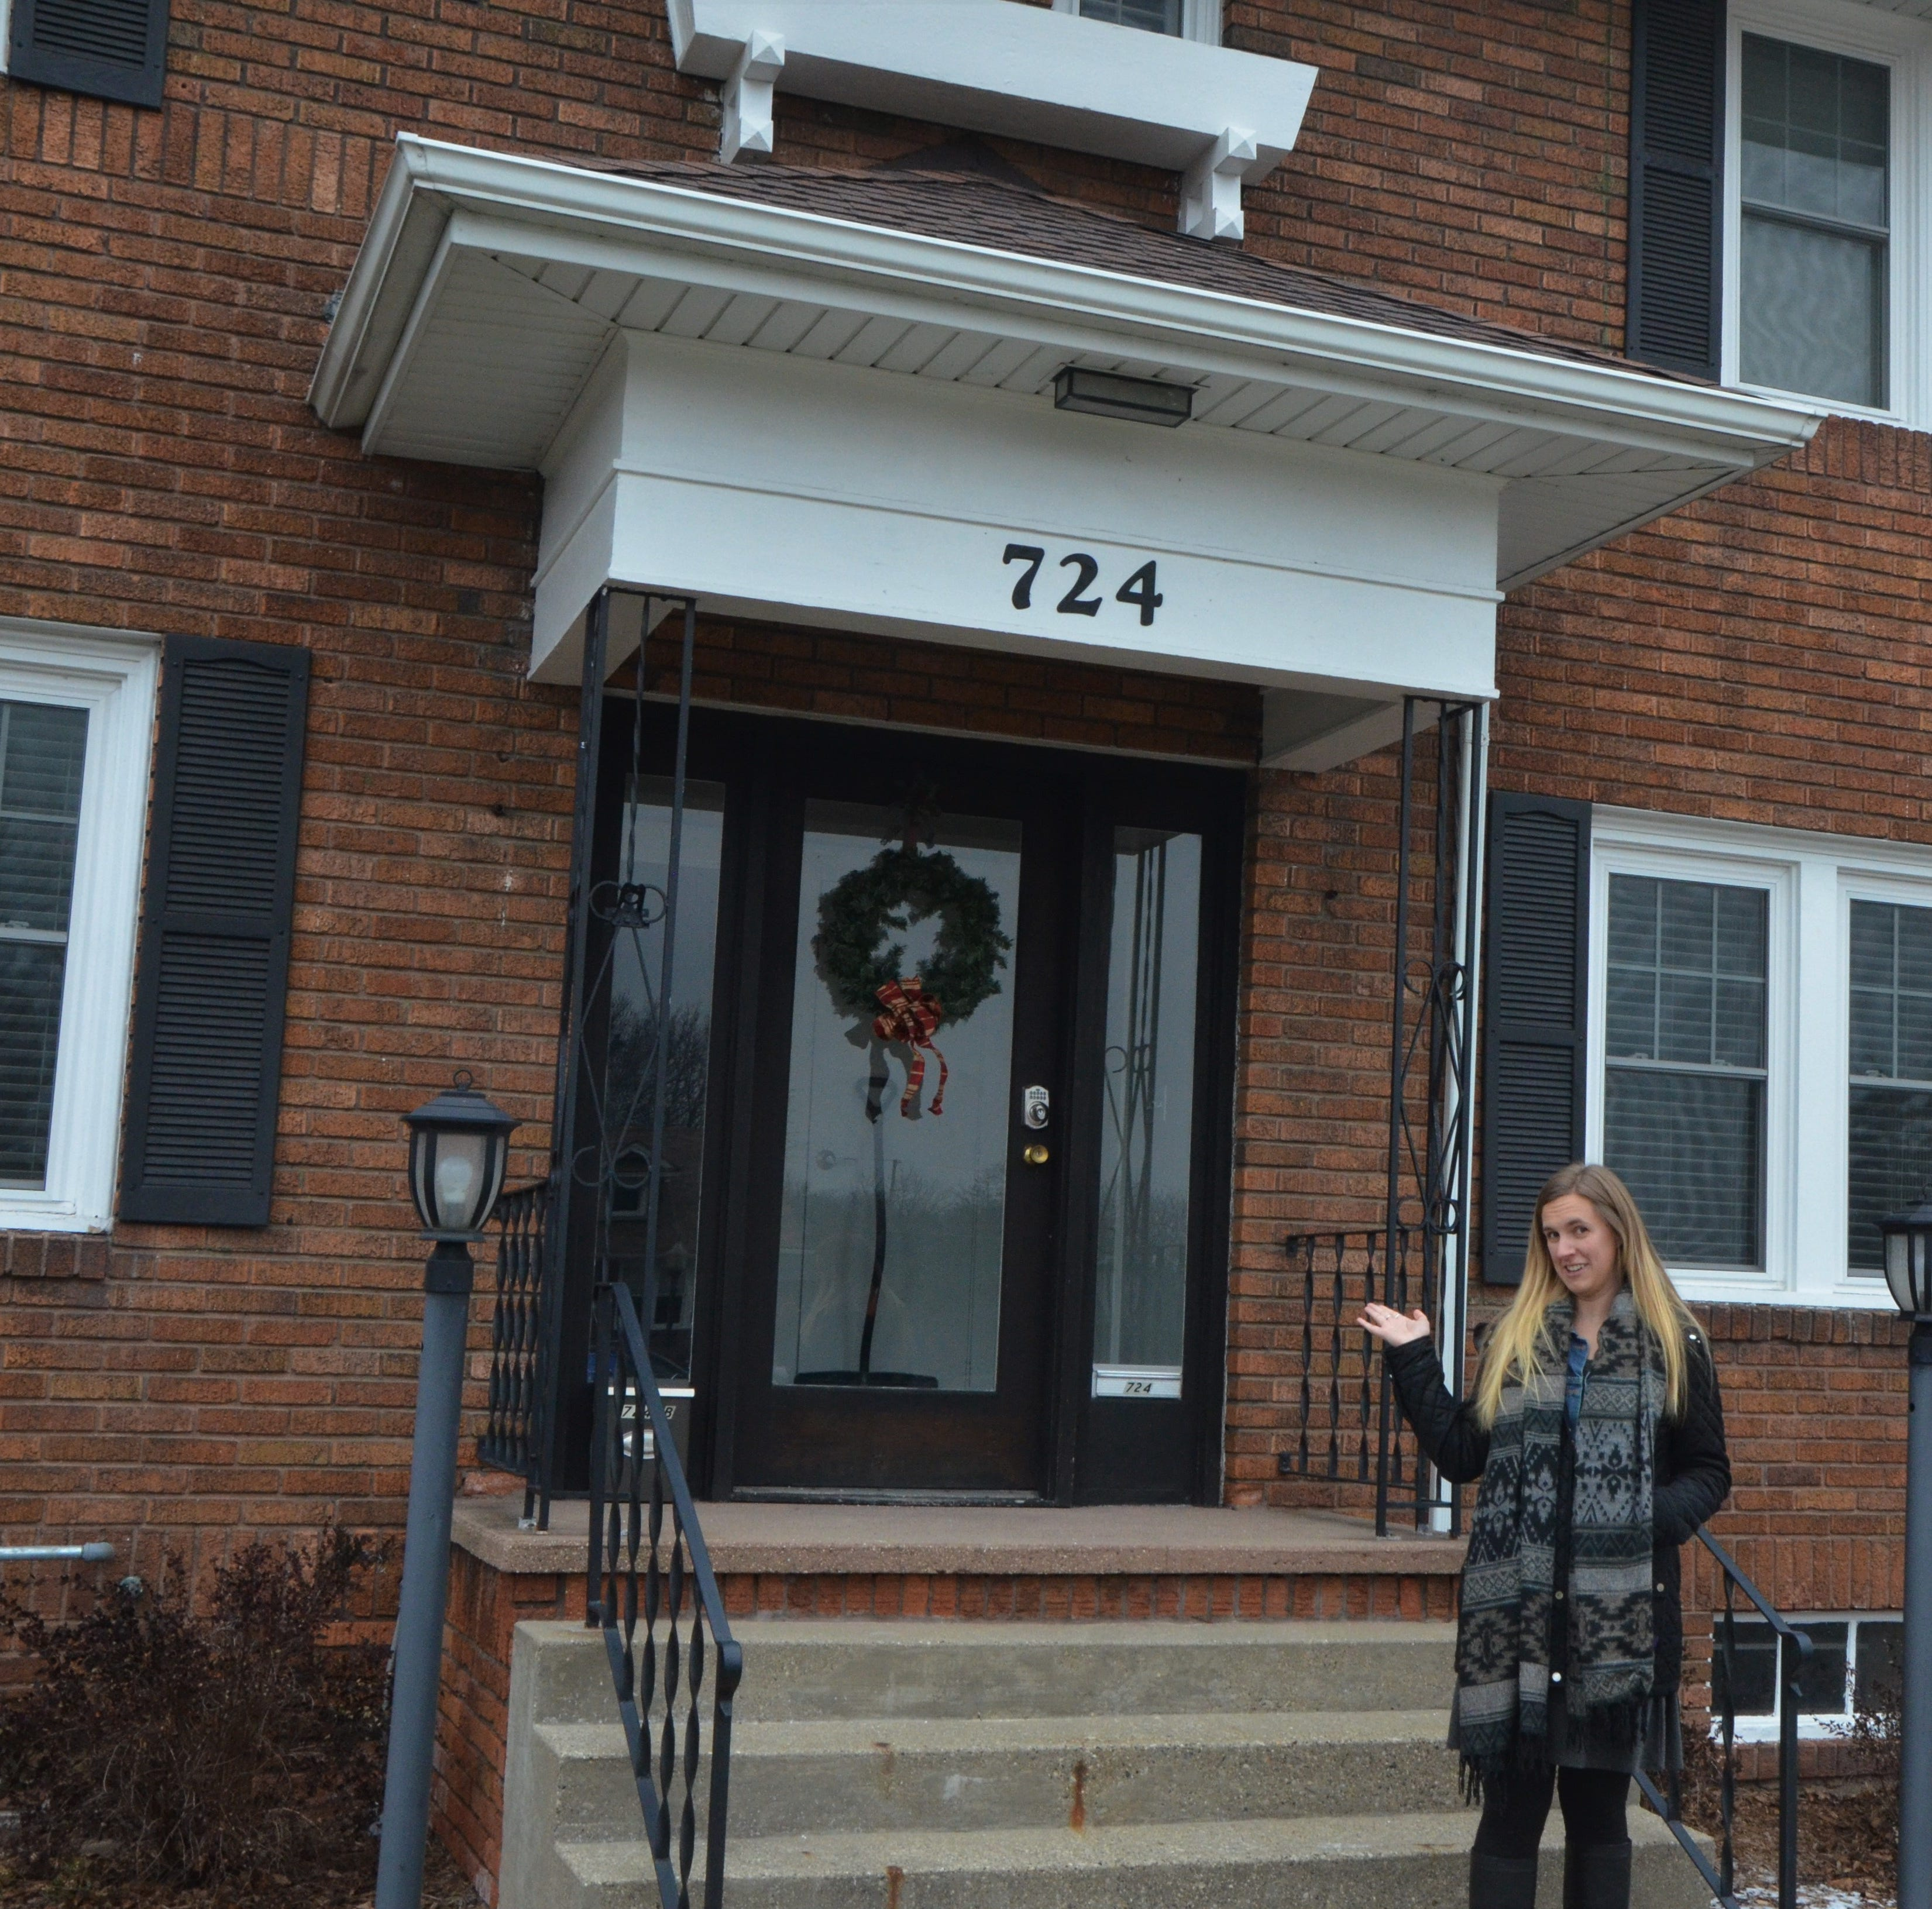 Calling all landlords: City offering $300,000 to rehab rental properties